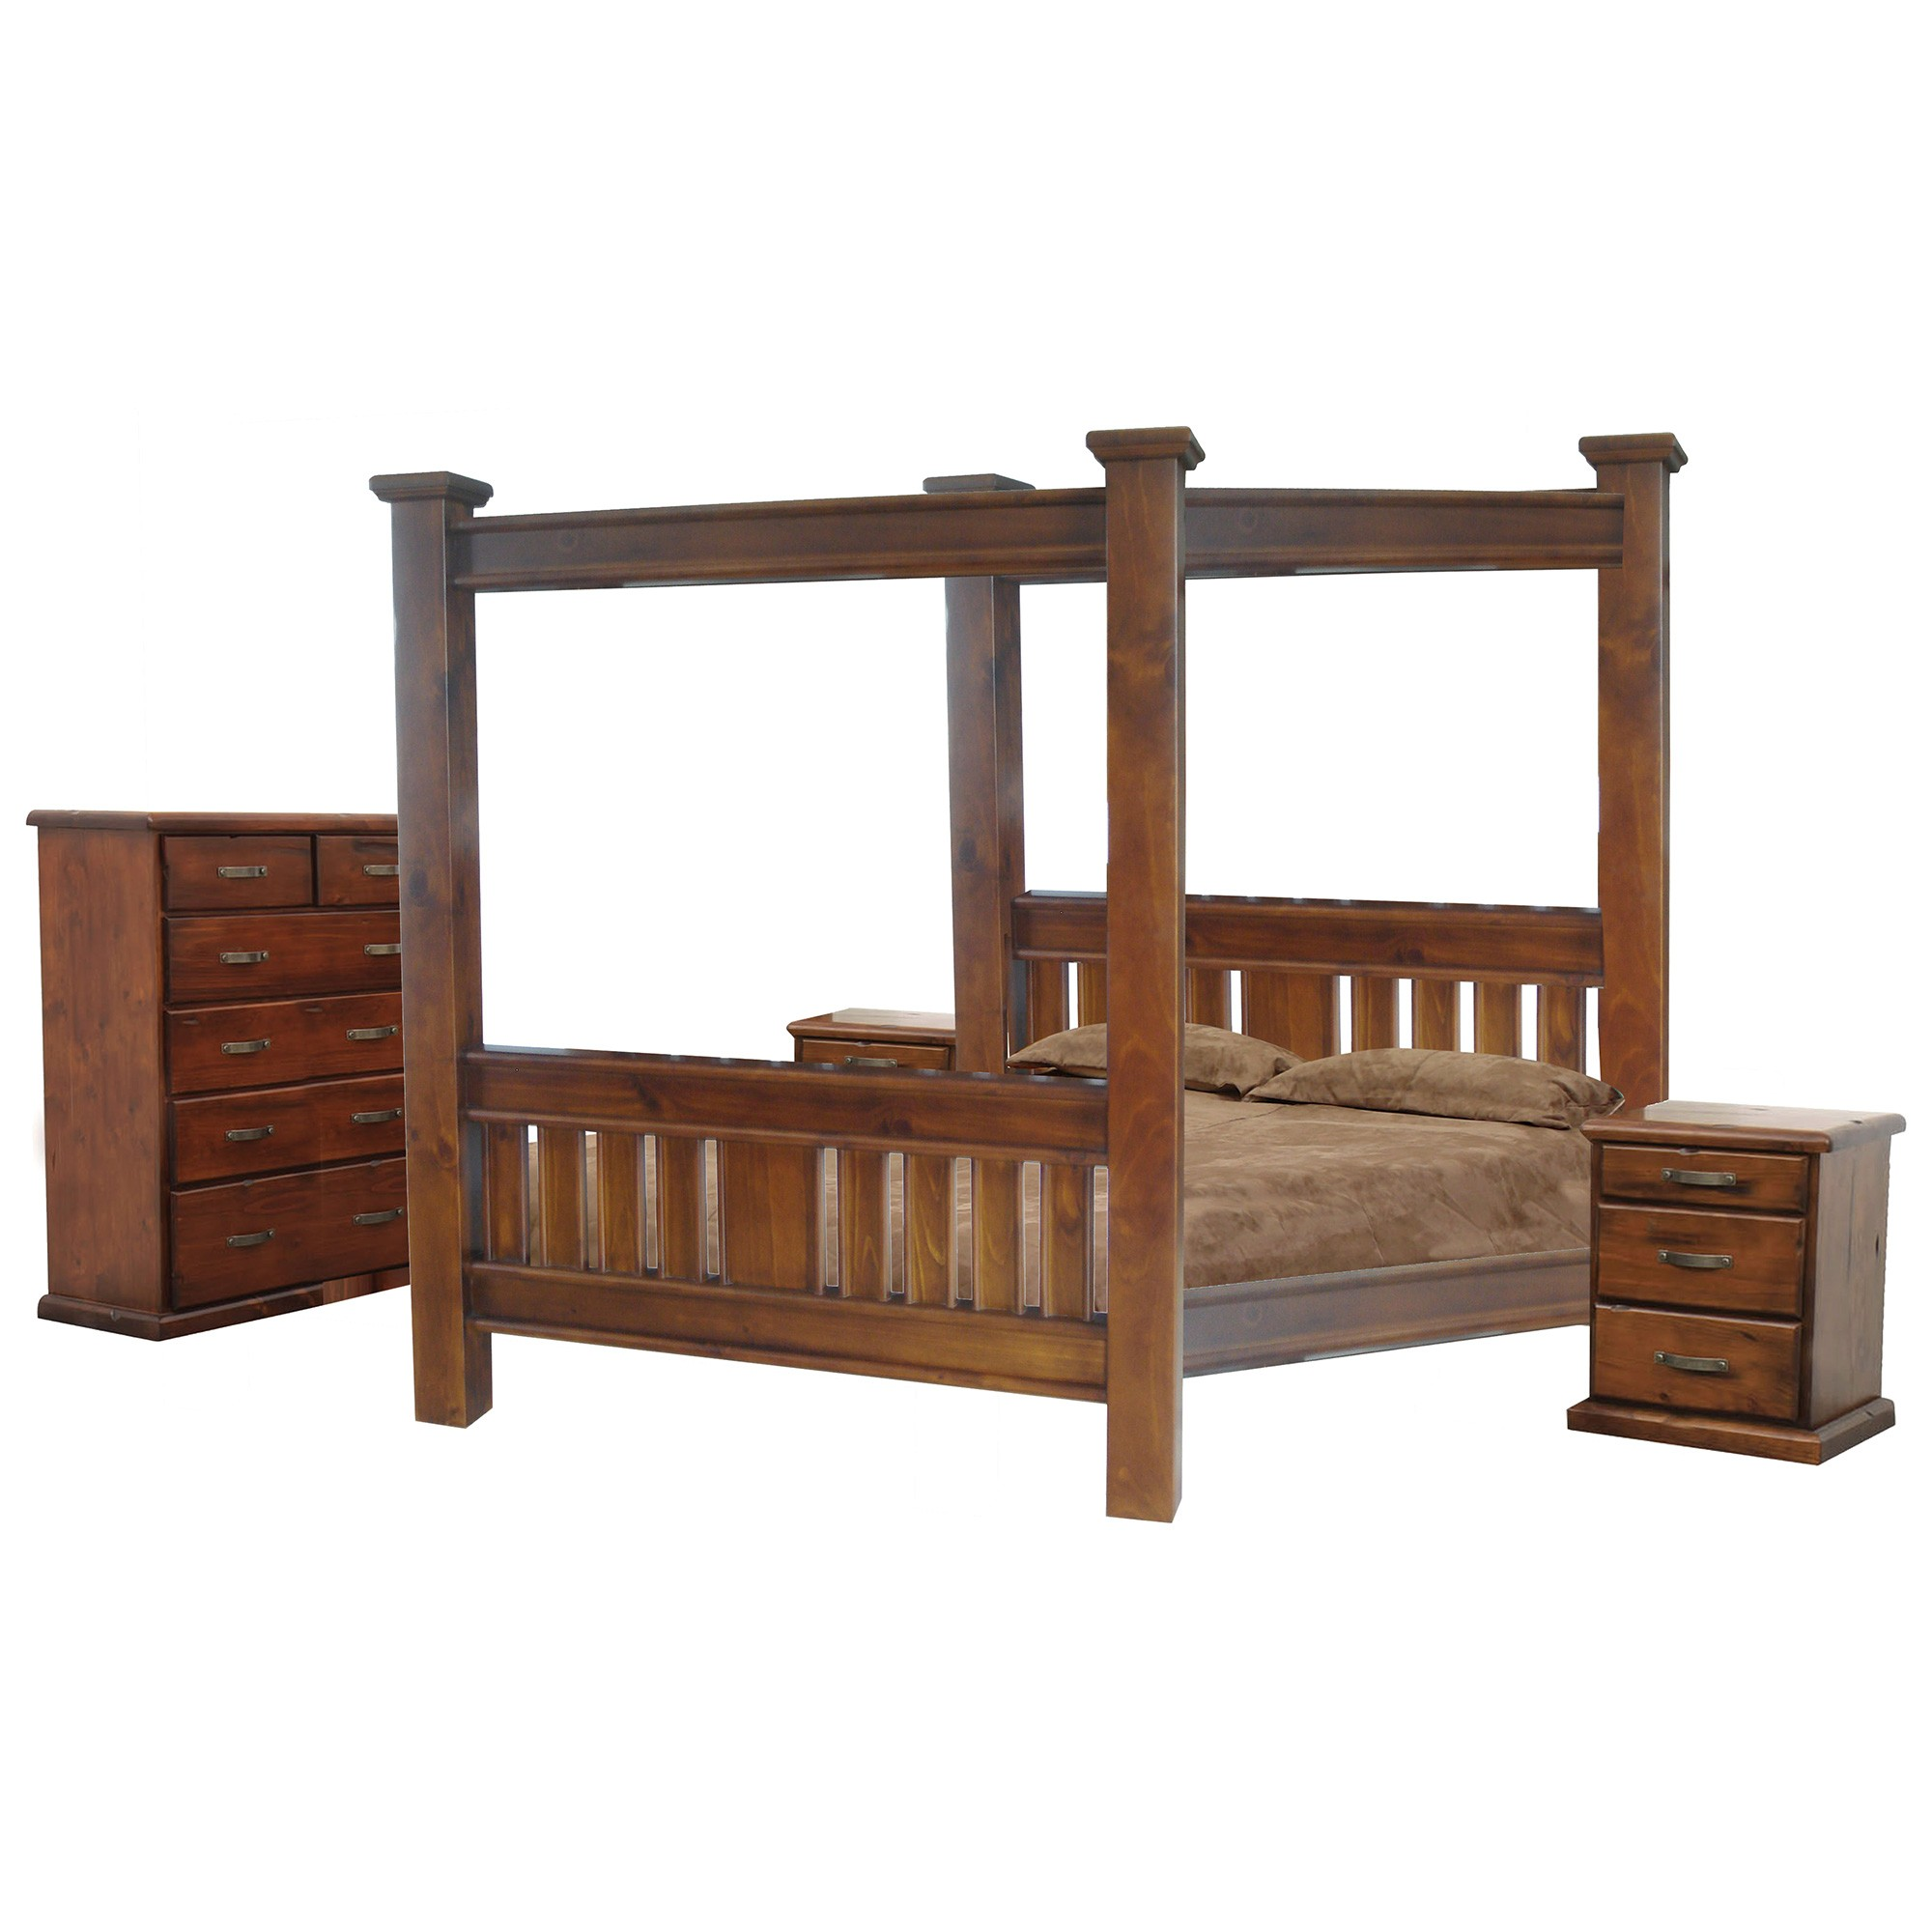 Spring New Zealand Pine Timber 4 Post Bed, Queen